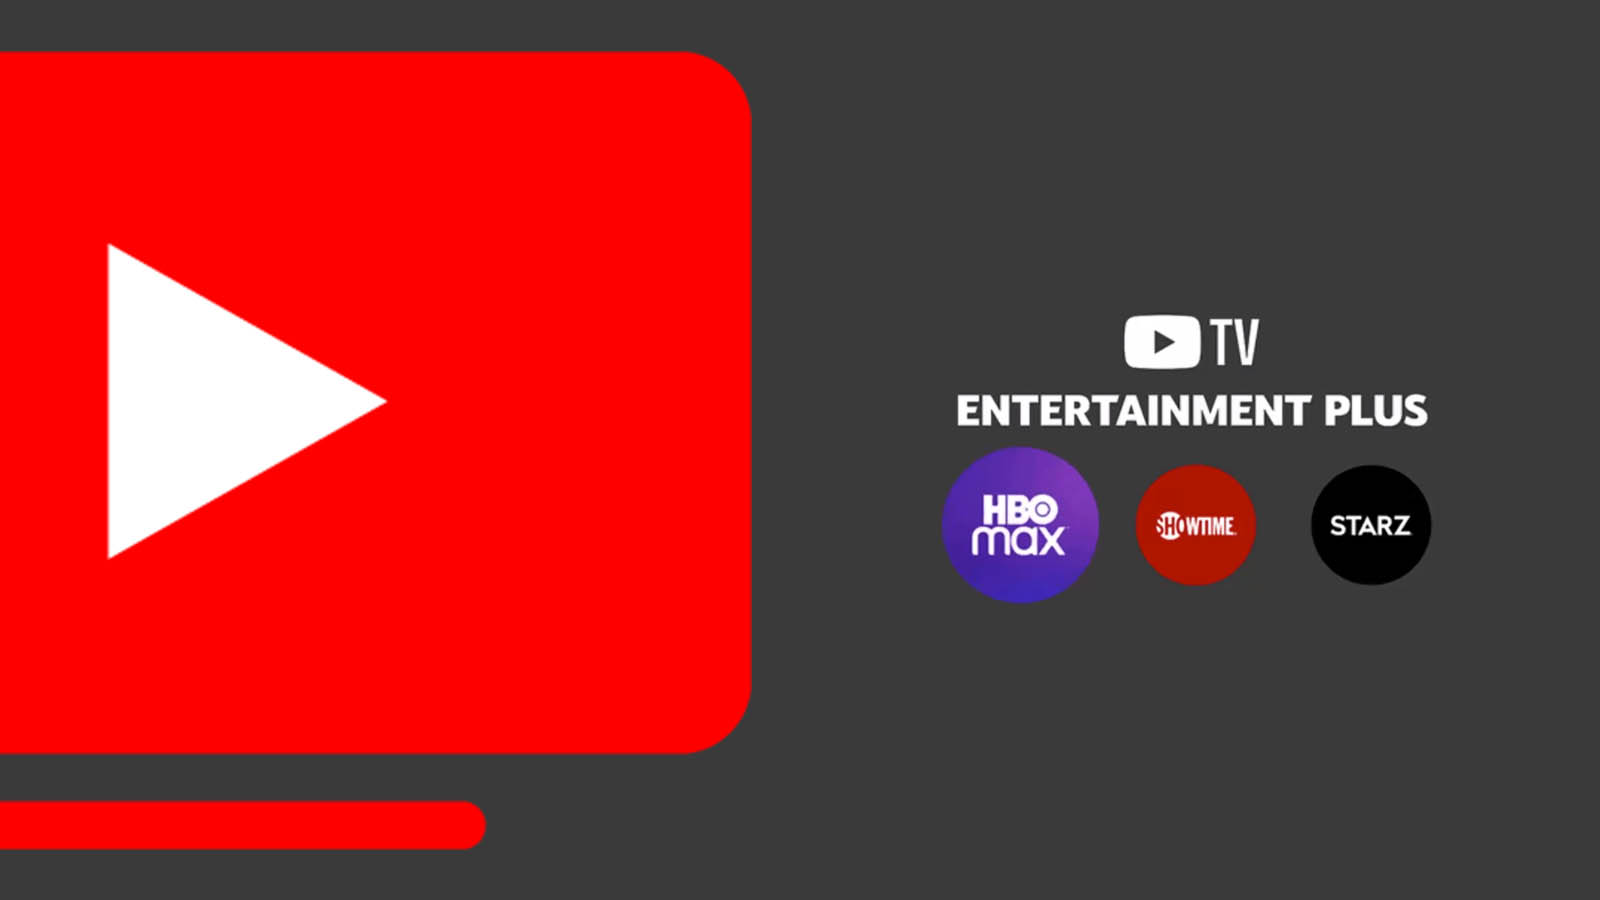 Entertainment Plus package from Youtube TV bundles three popular networks to save you money